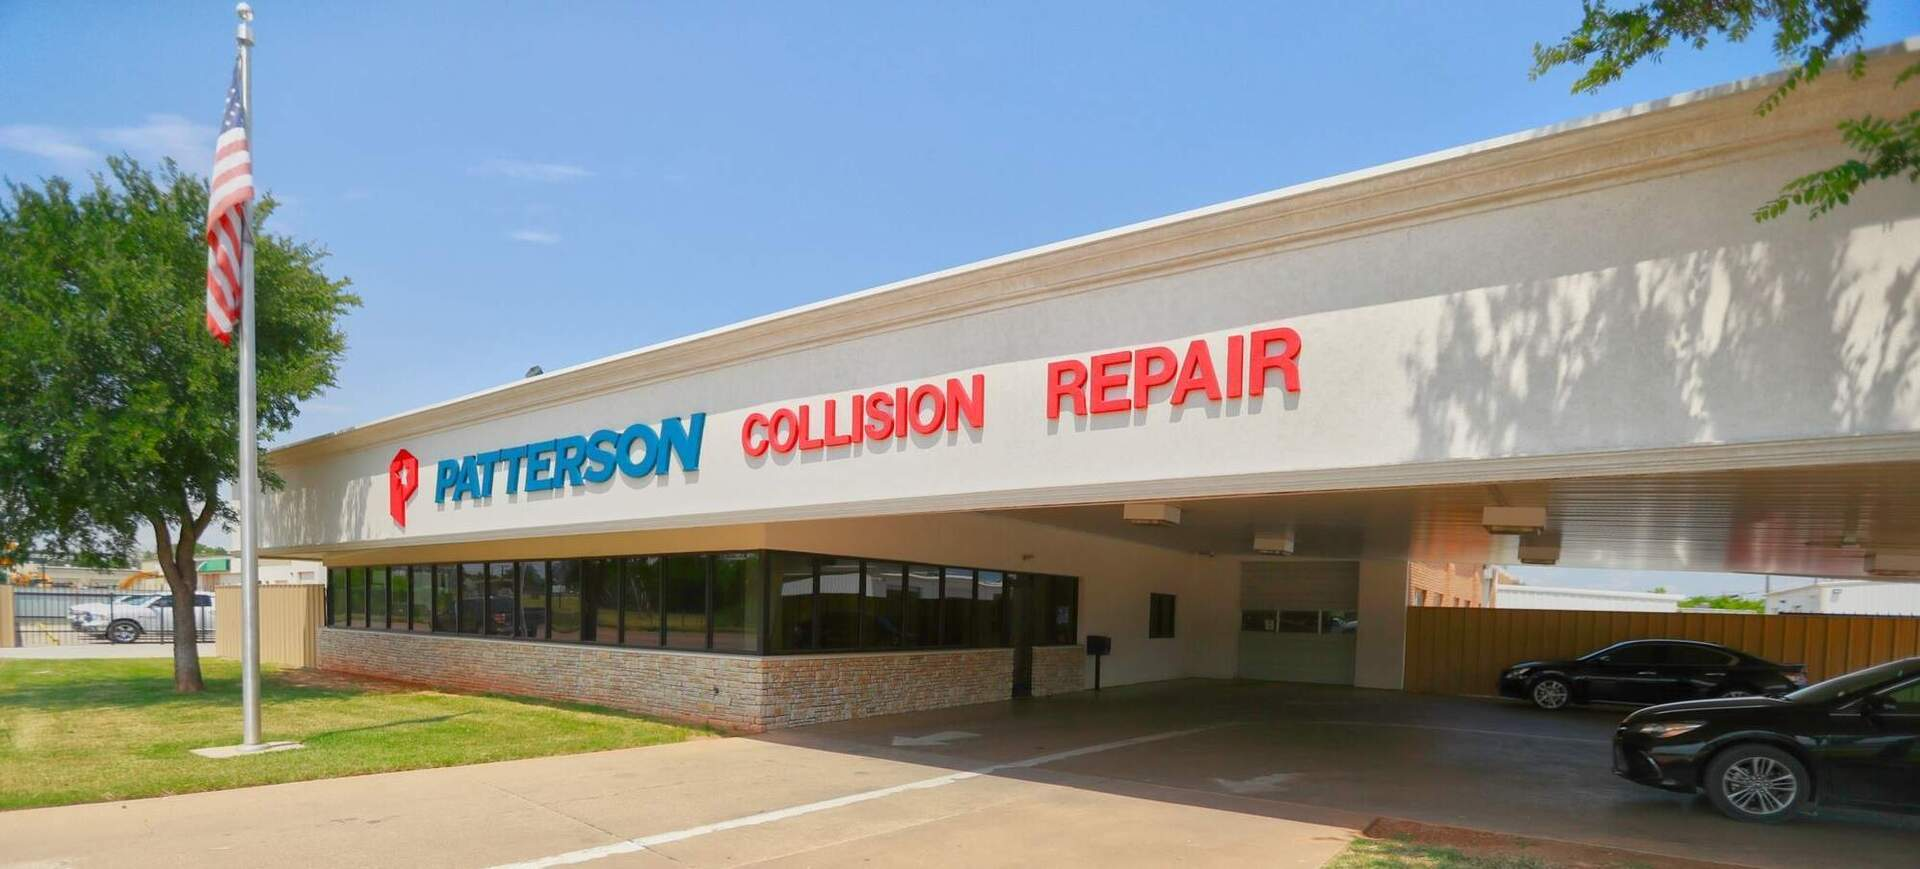 Patterson Collision Repair